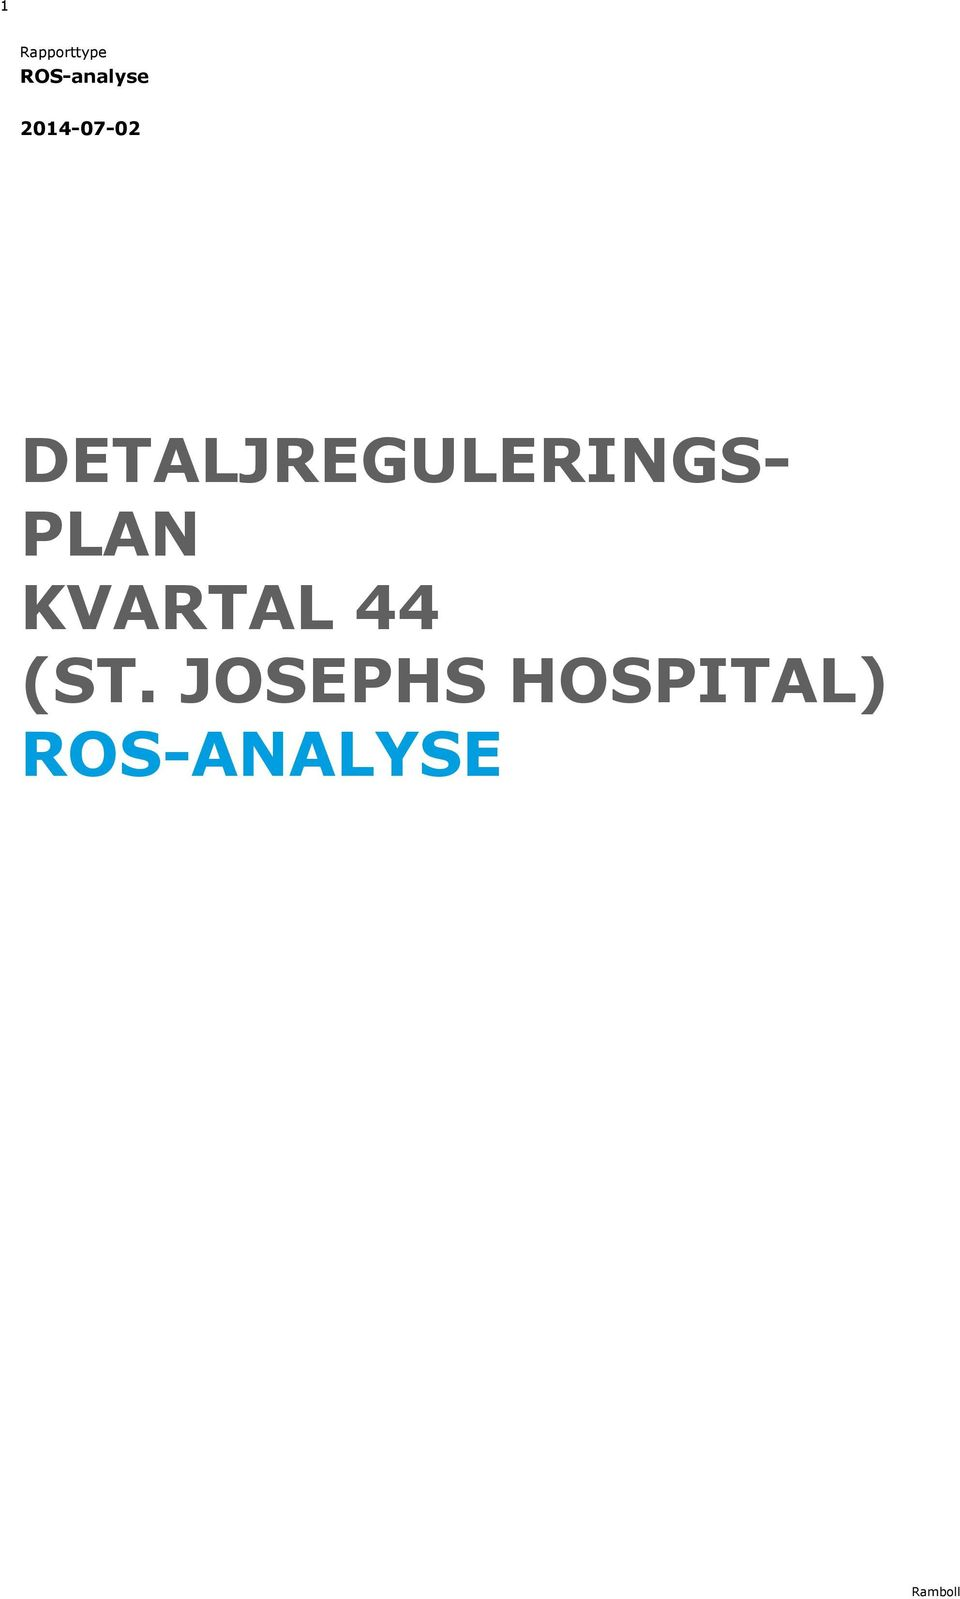 DETALJREGULERINGS- PLAN